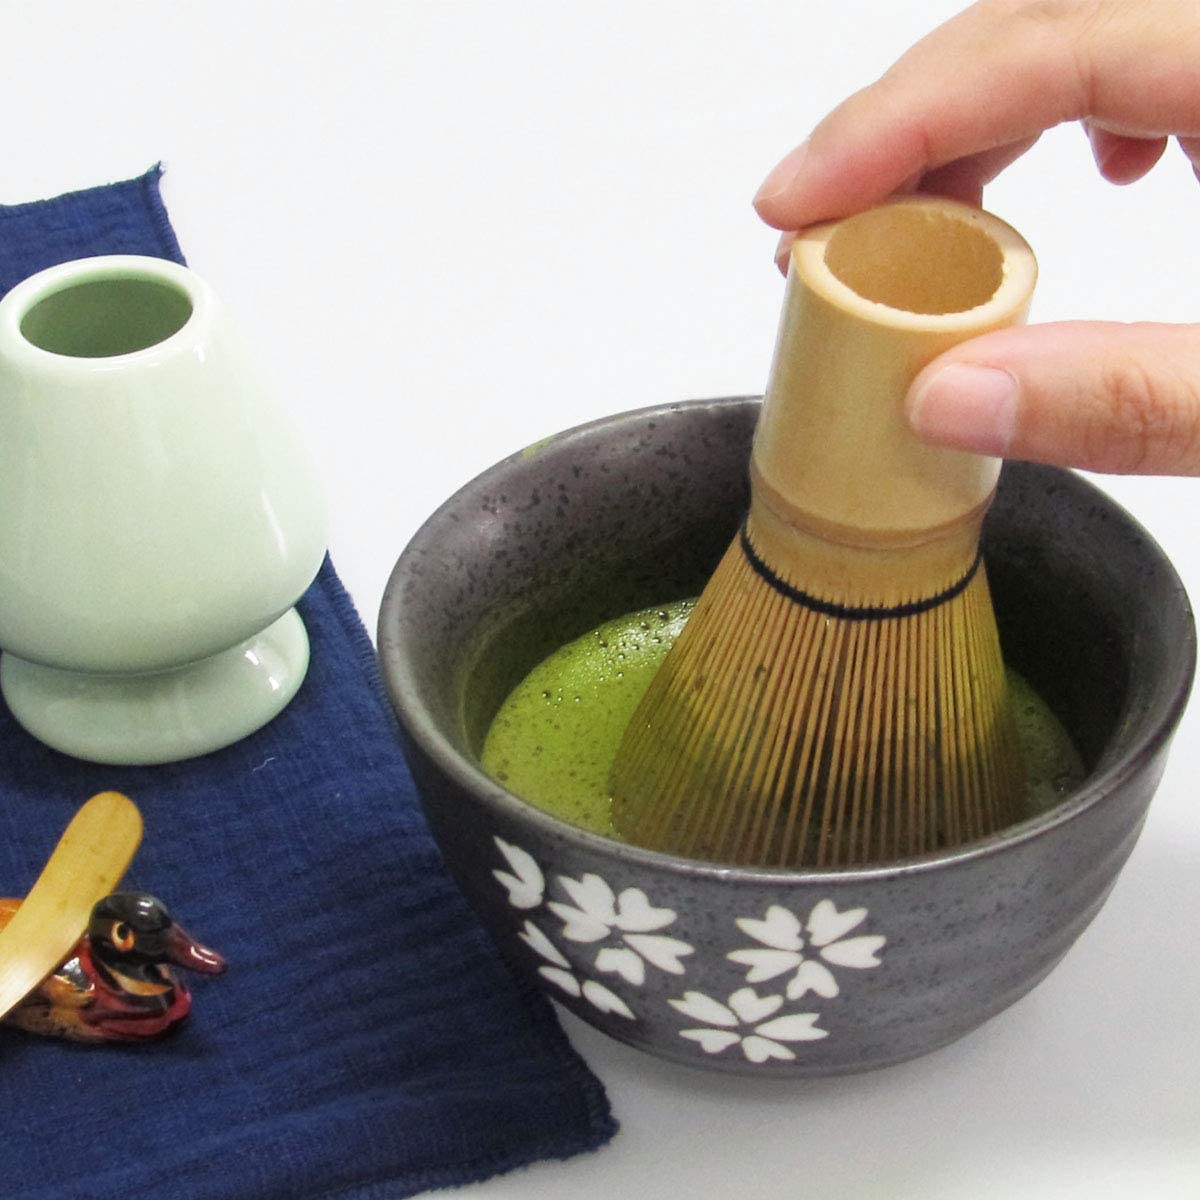 6pcs Handmade Matcha Ceremony Kit for Traditional Japanese Tea Ceremony Steel Stainless Strainer Matcha Whisk Artcome Japanese Matcha Tea Latte Tool Set Milk Frothering Pitcher